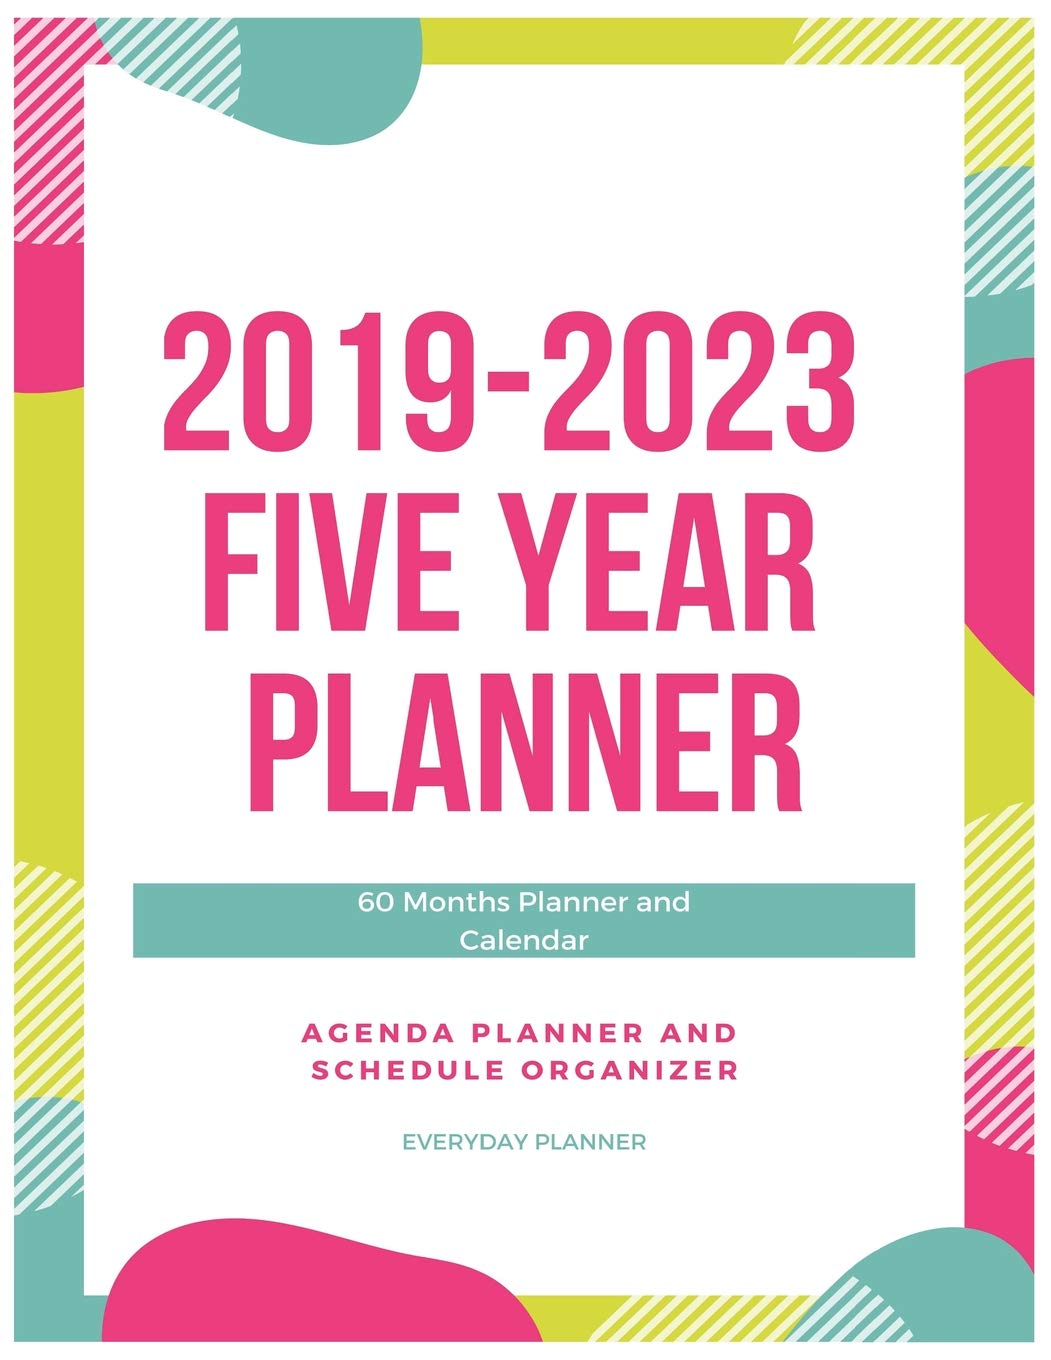 2019-2023 FIVE YEAR PLANNER: 60 Months Planner and Calendar ...